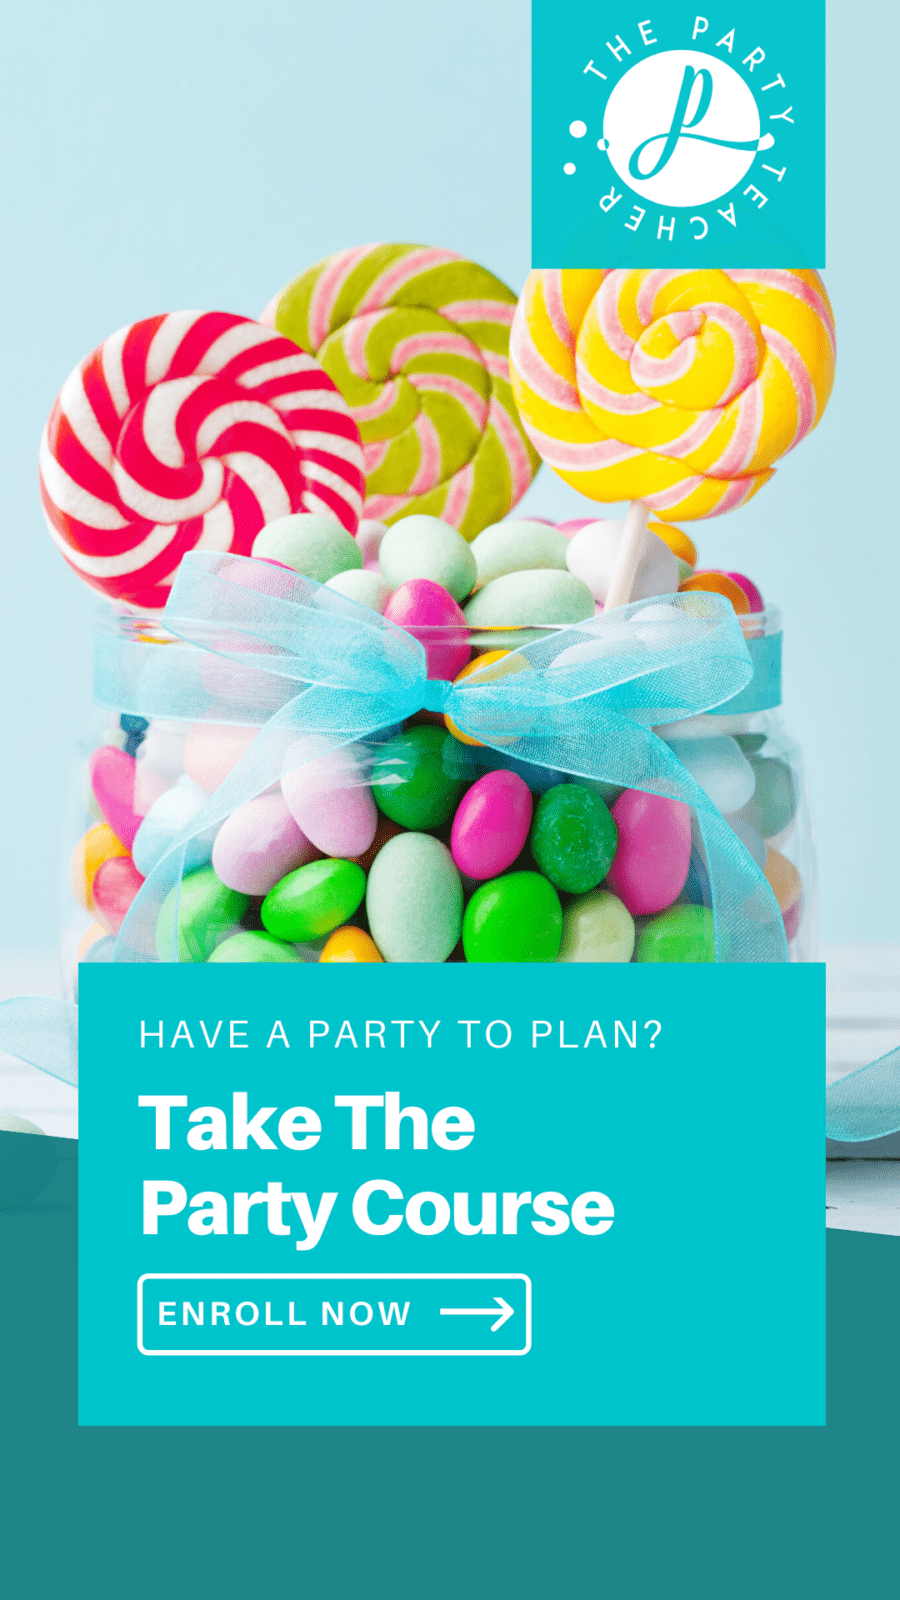 Enroll in The Party Course